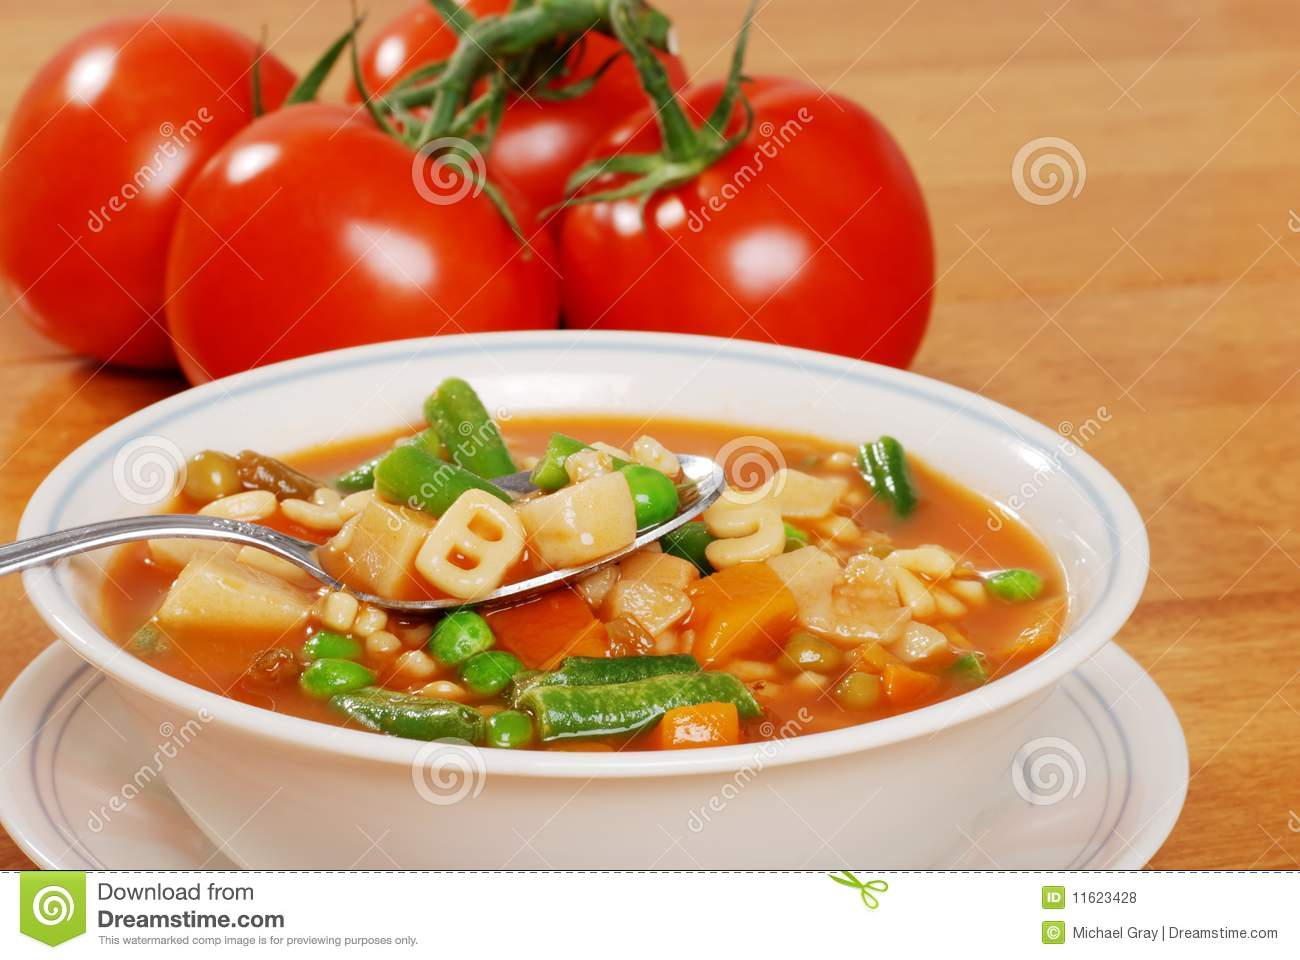 Vegetable Soup With Tomato In The Background Royalty Free Stock Photos ...